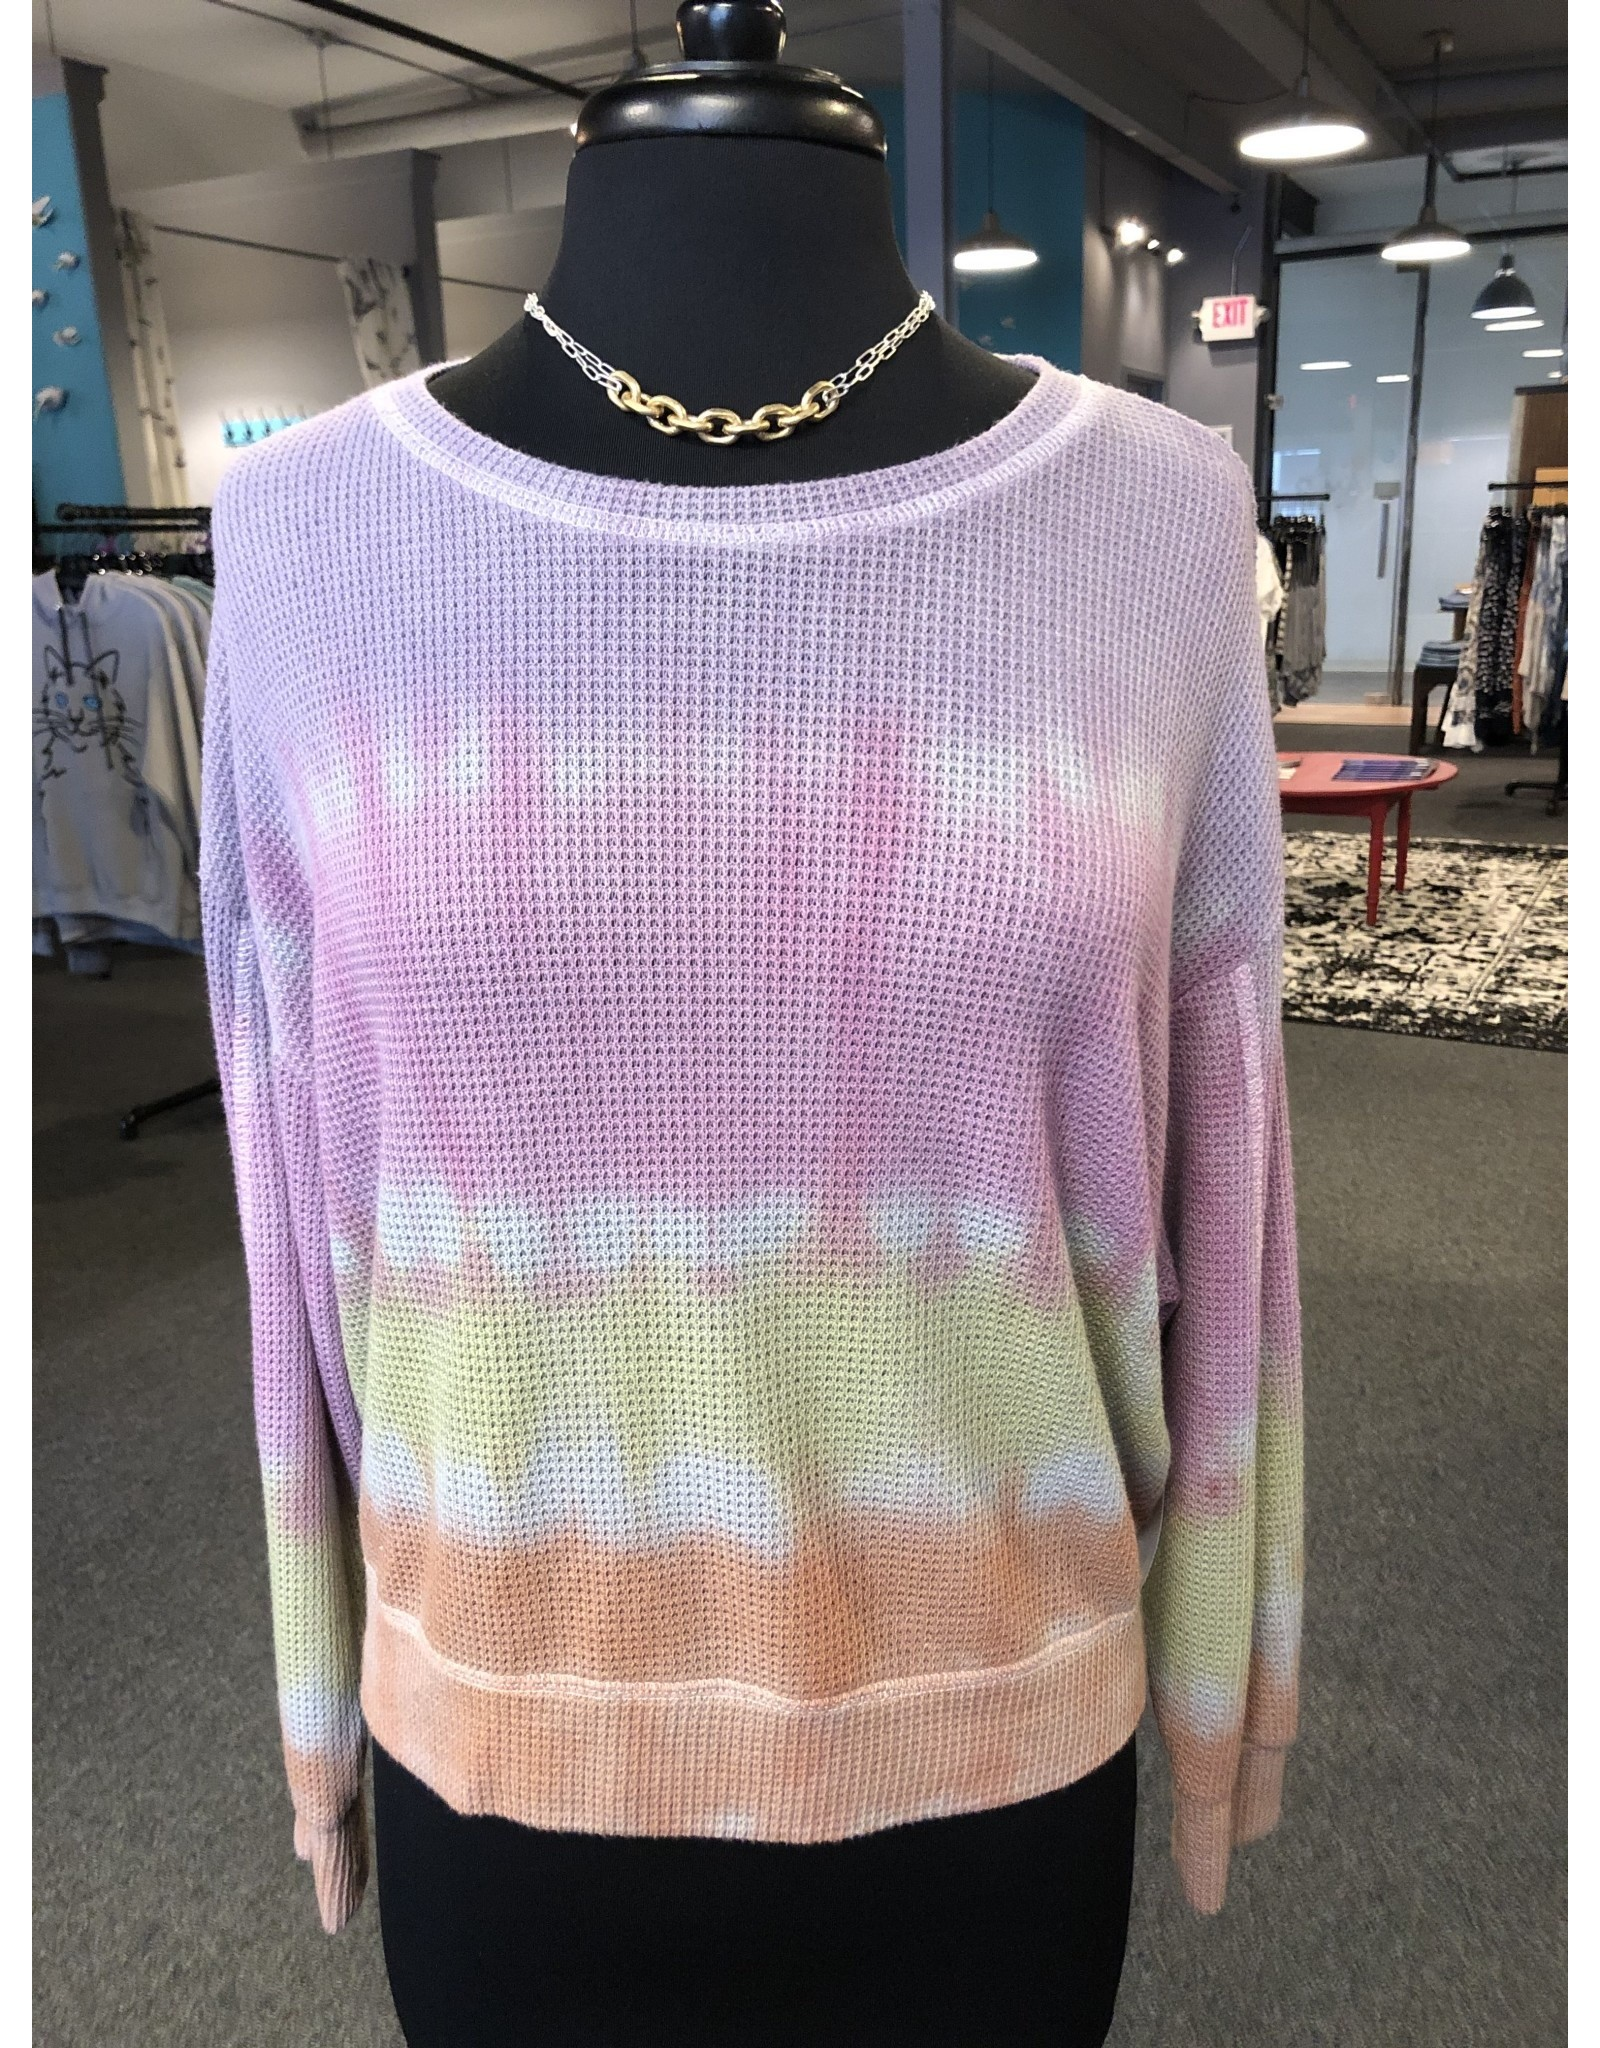 The Nu Vintage Waffle Knit Ombre Top